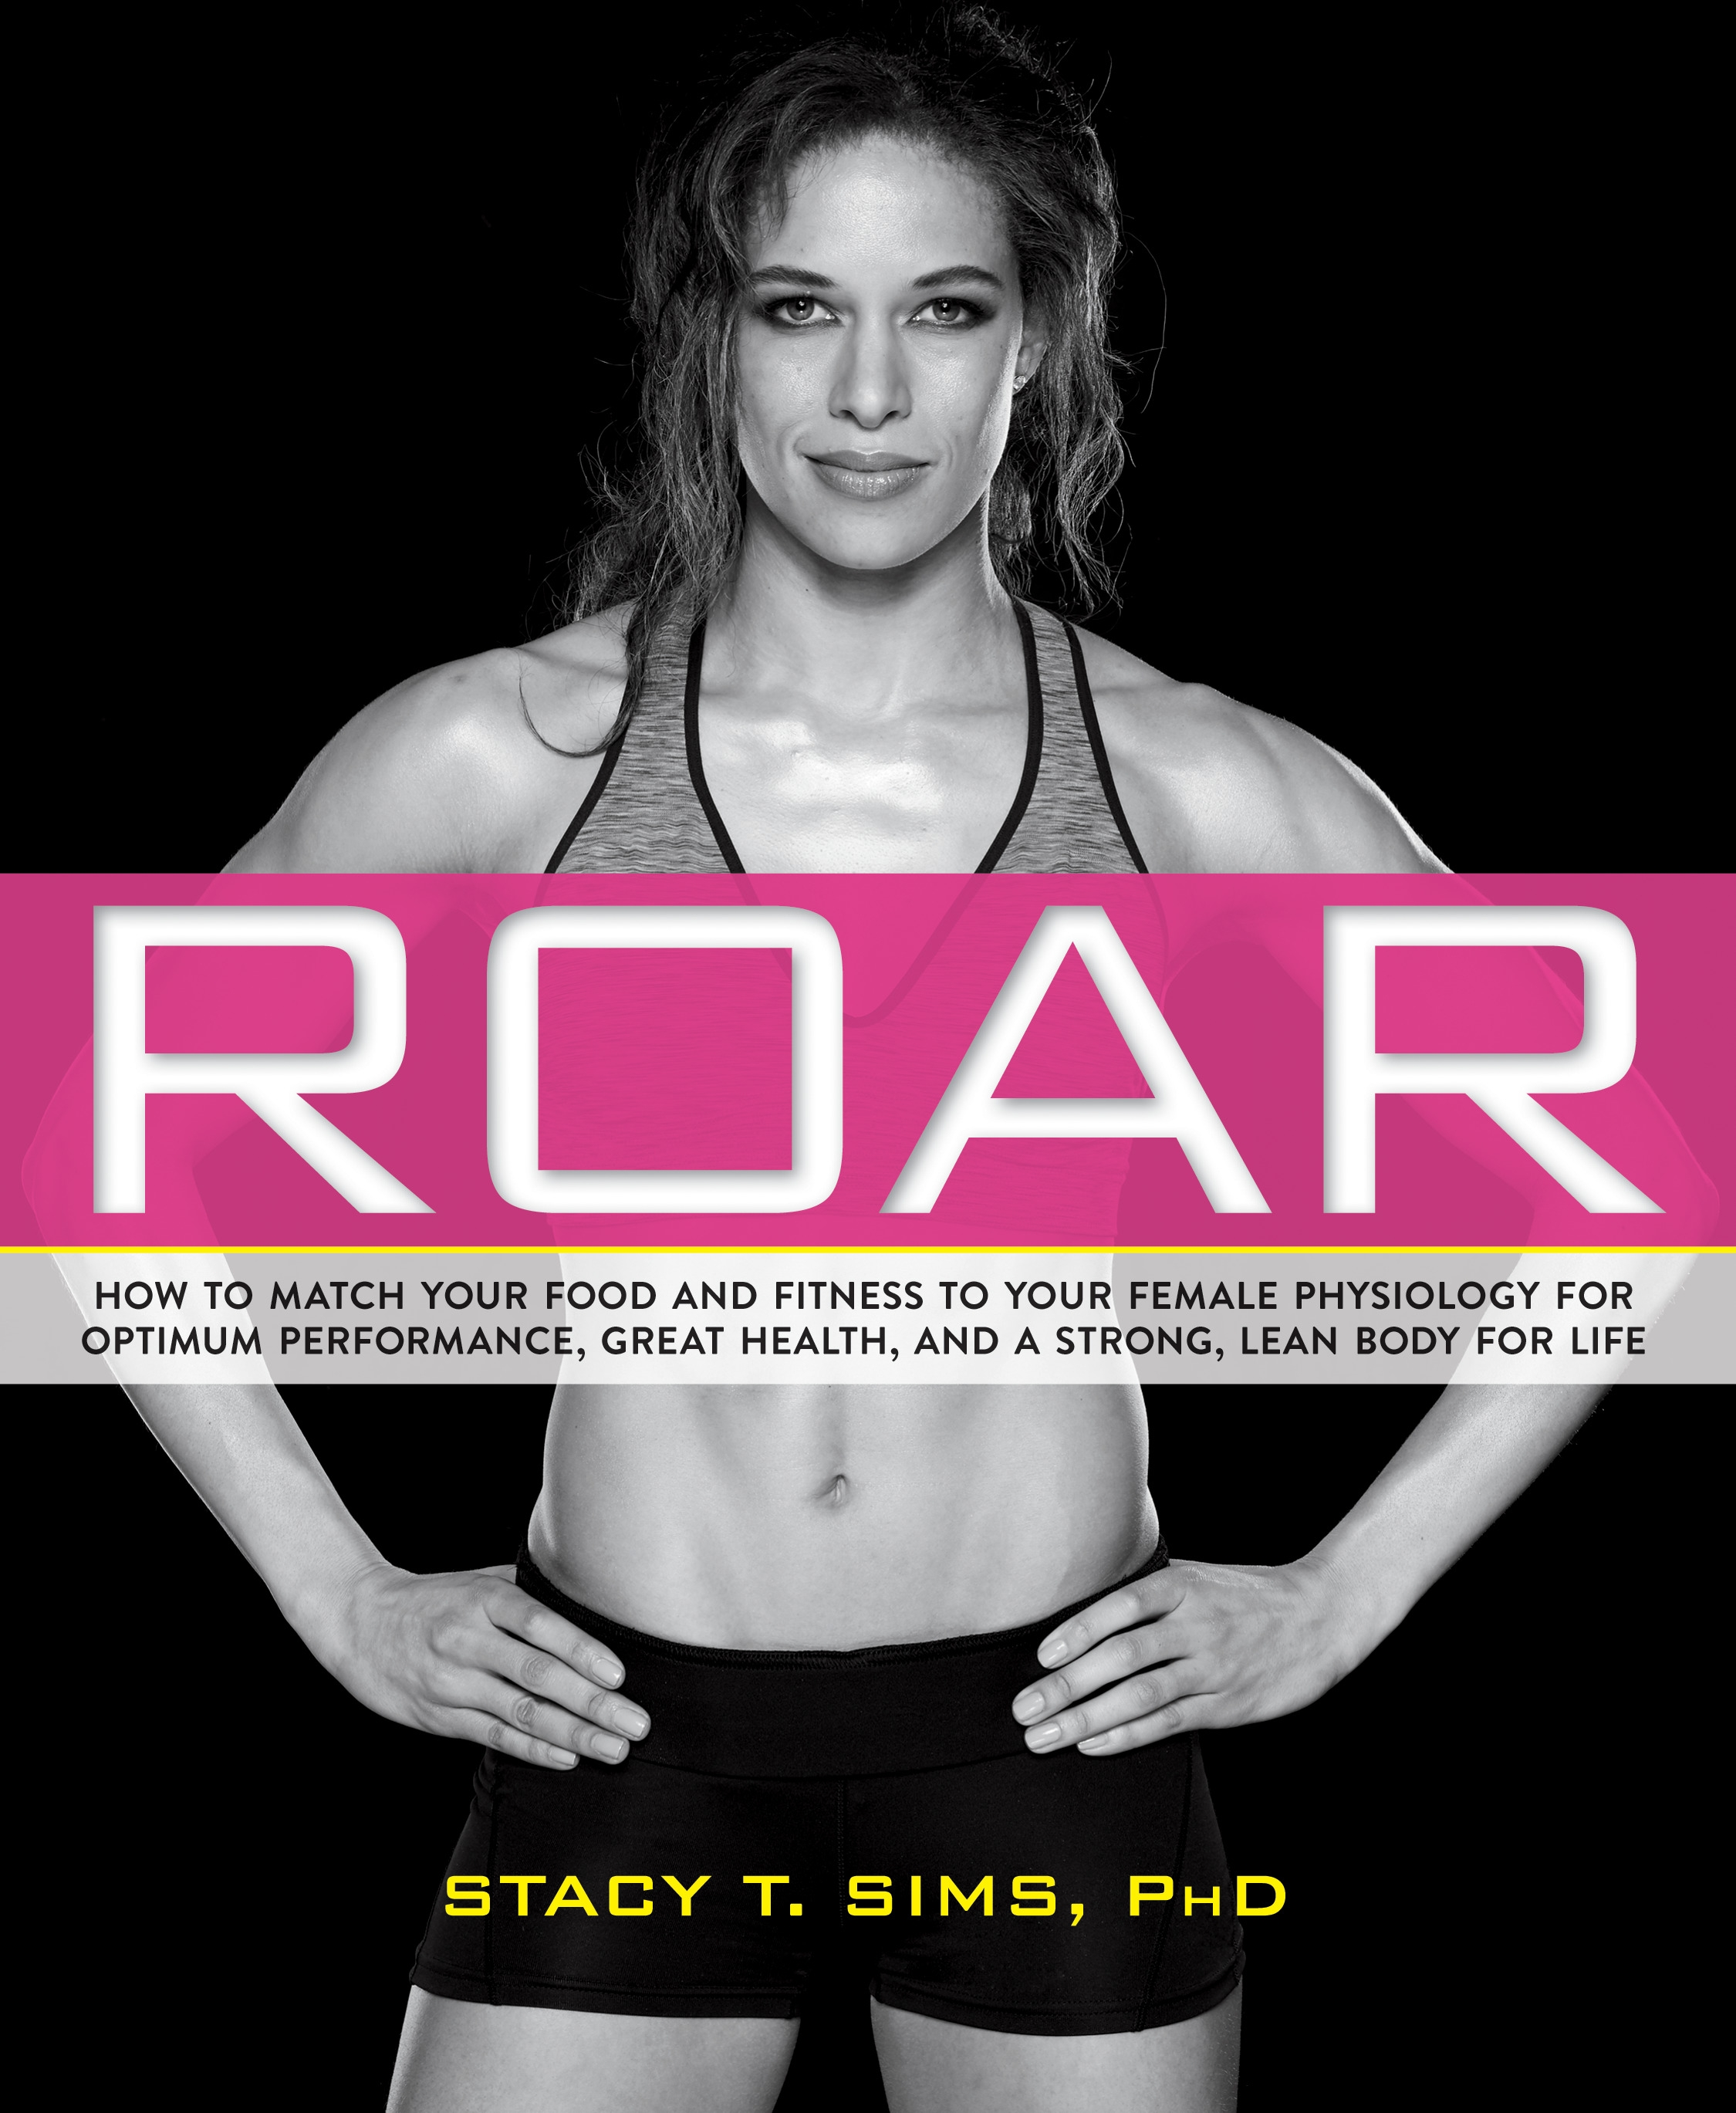 RoarHow to Match Your Food and Fitness to Your Uniq...